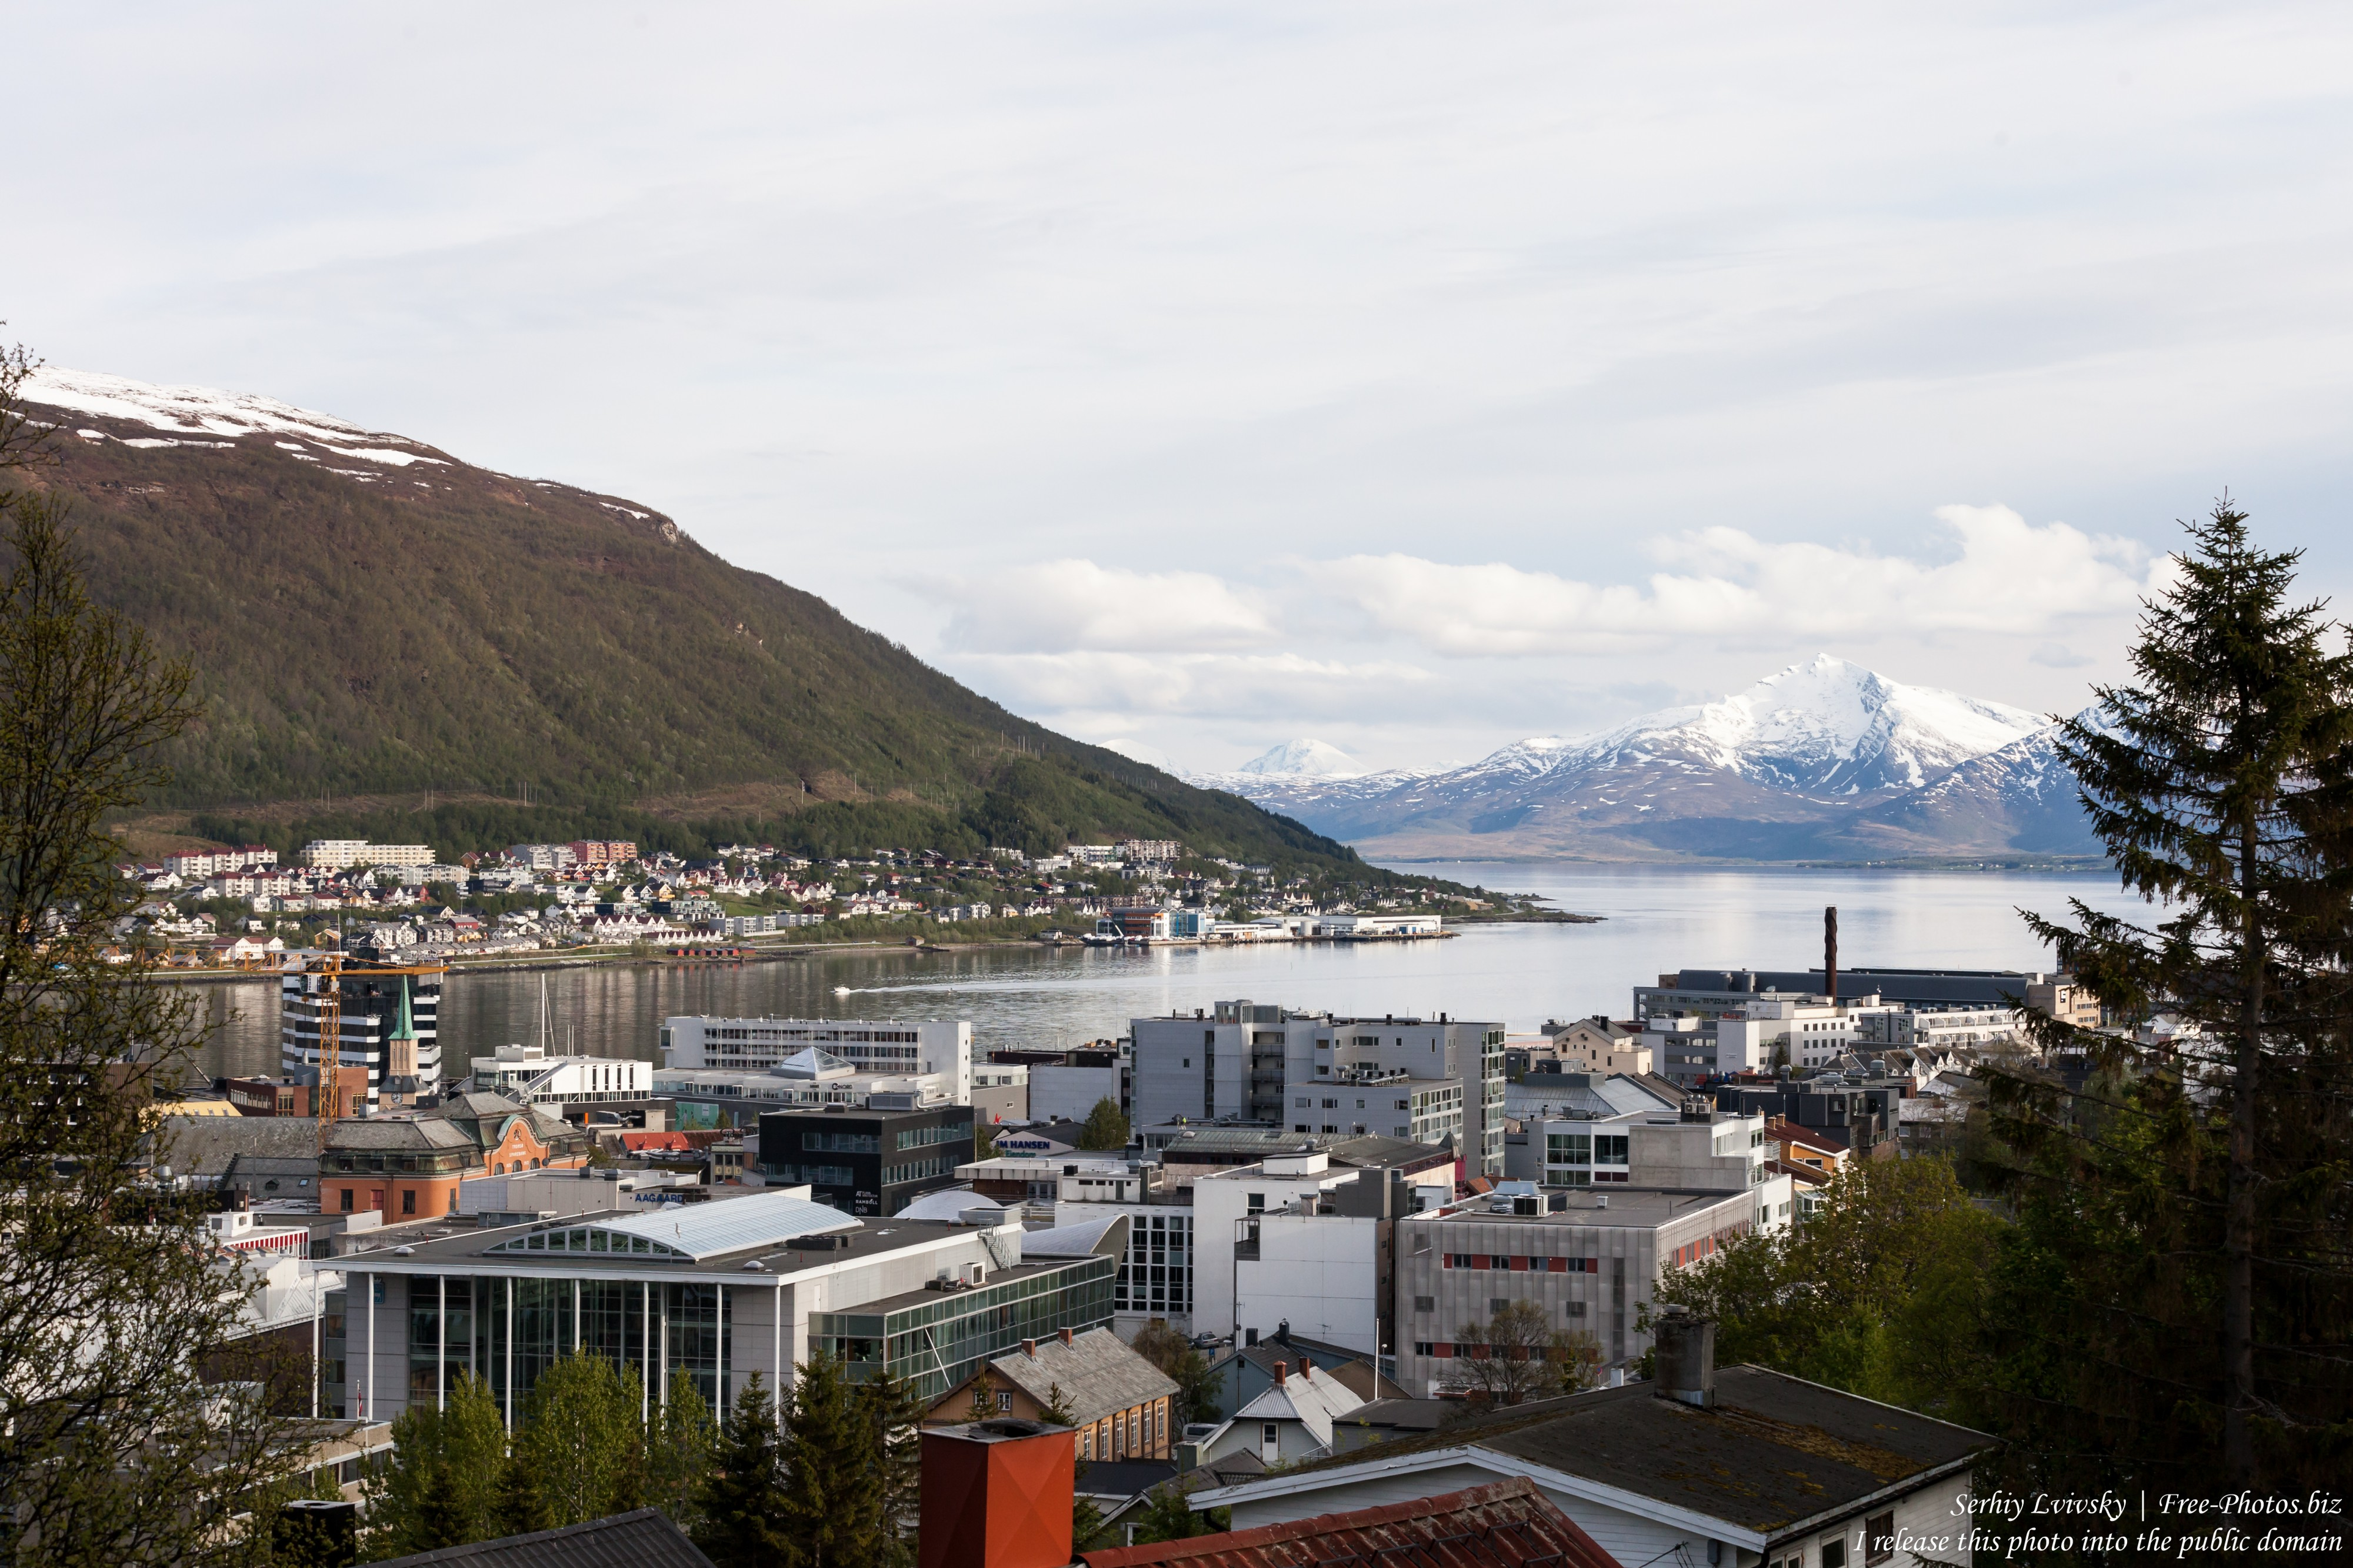 Tromso, Norway, photographed in June 2018 by Serhiy Lvivsky, picture 65